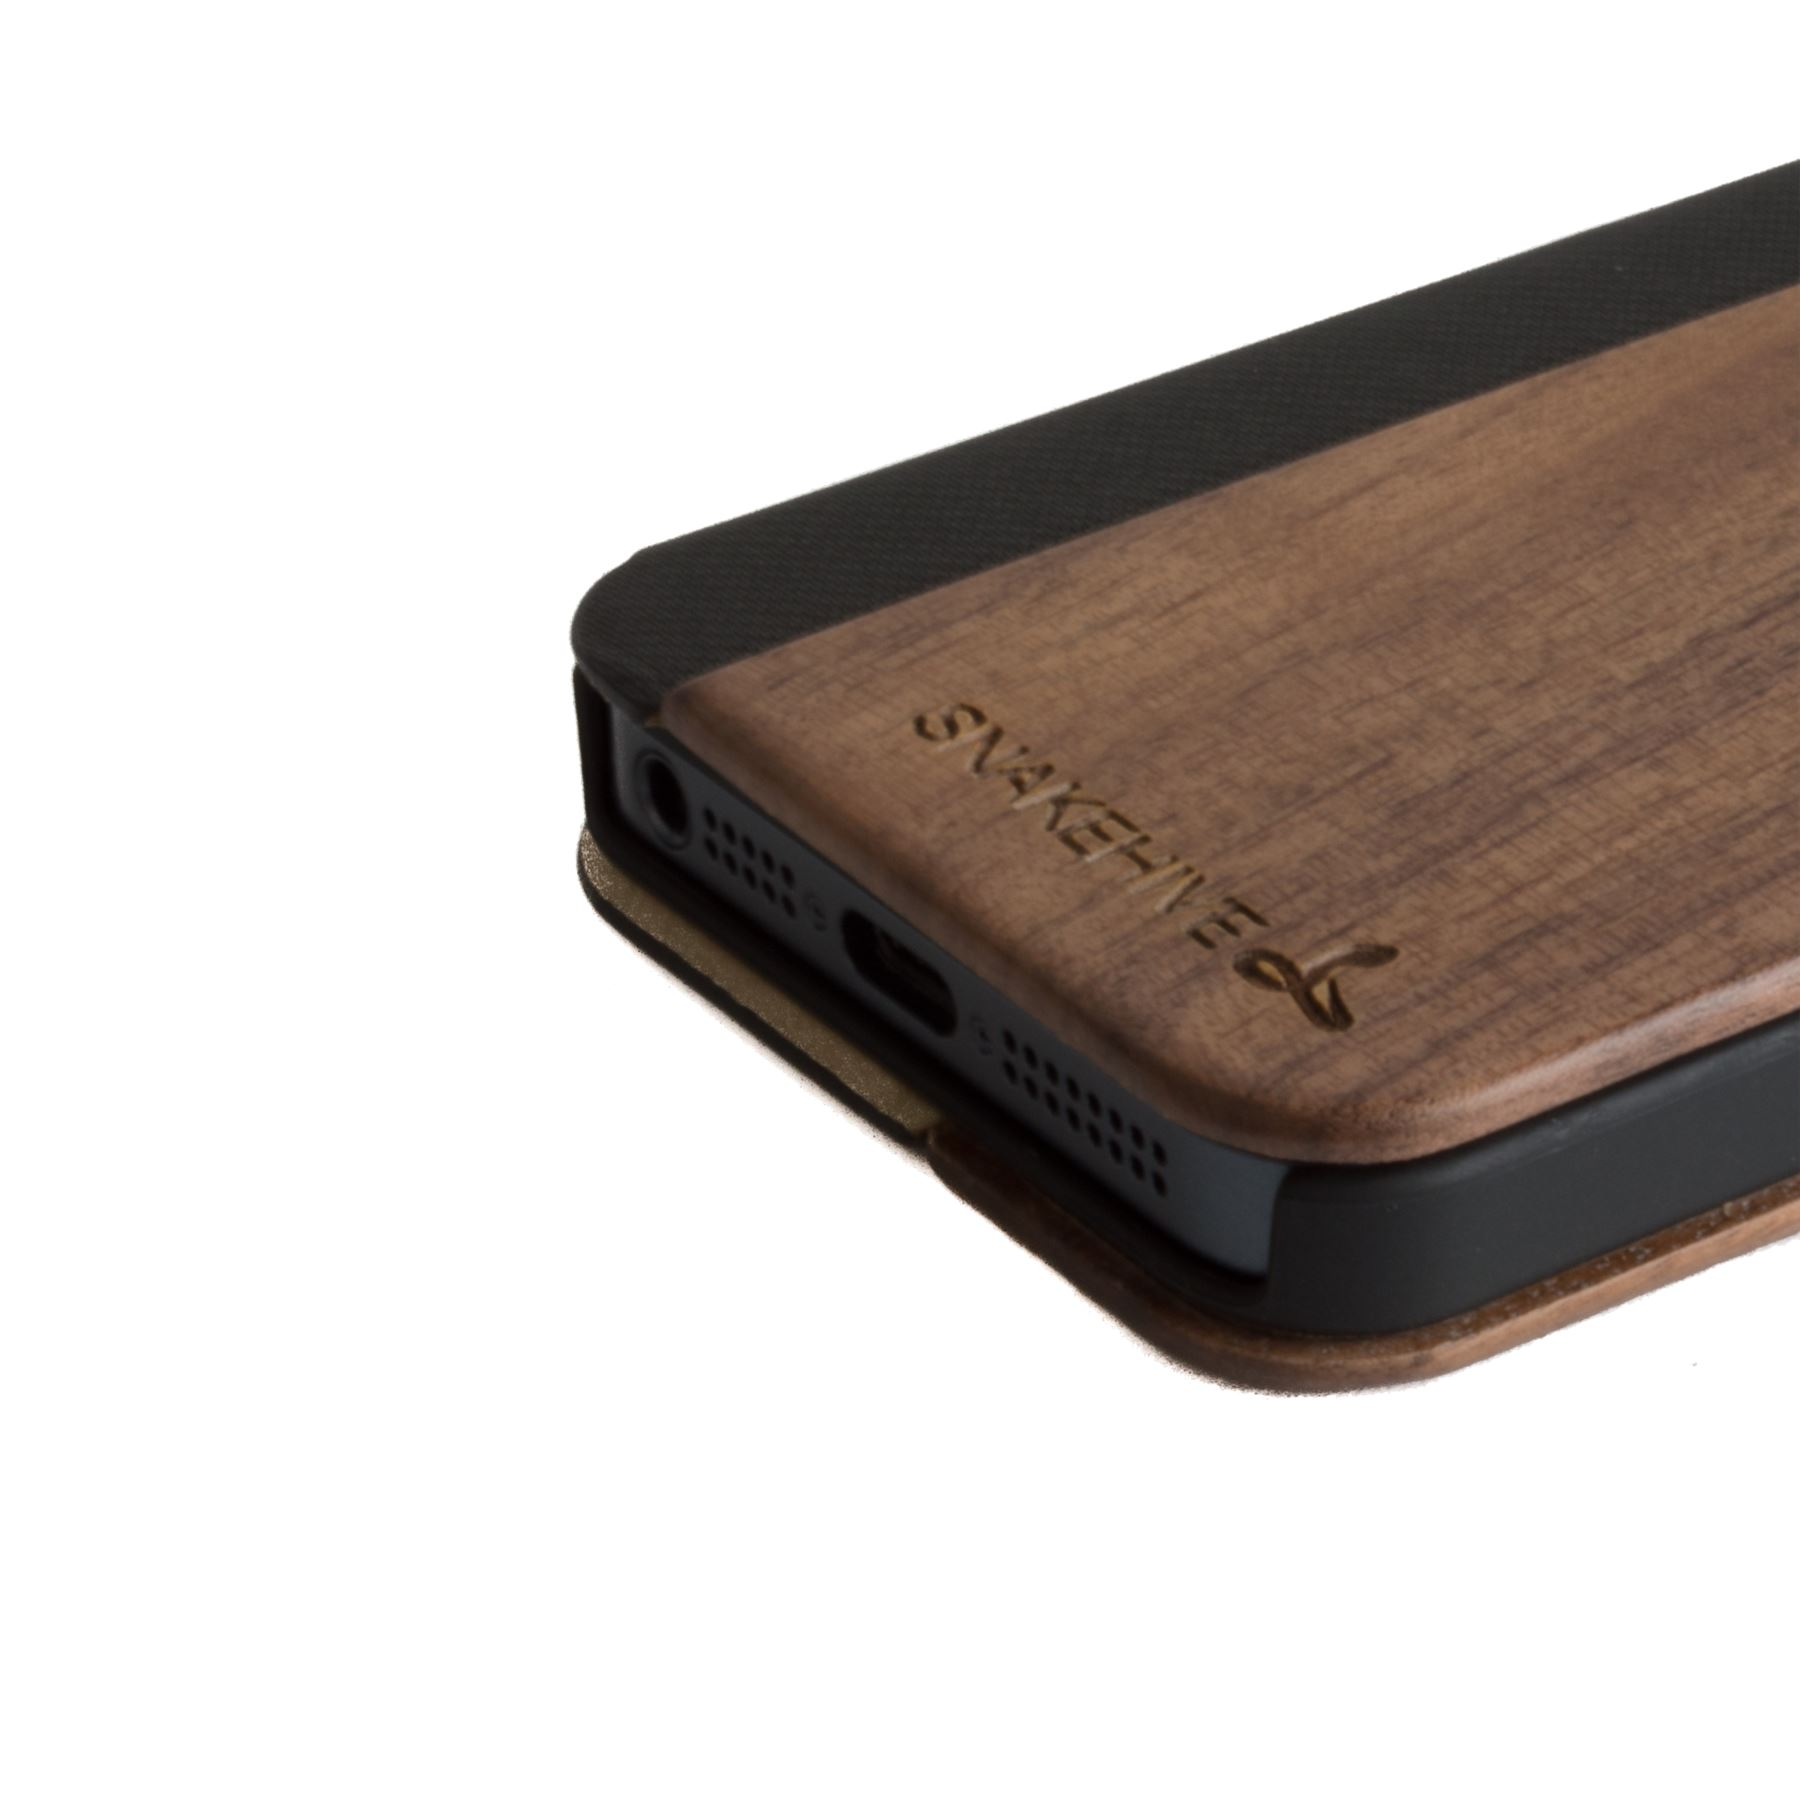 Snakehive real wood leather wallet flip case cover for apple iphone 5 5s ebay - Iphone 5s leather case ...